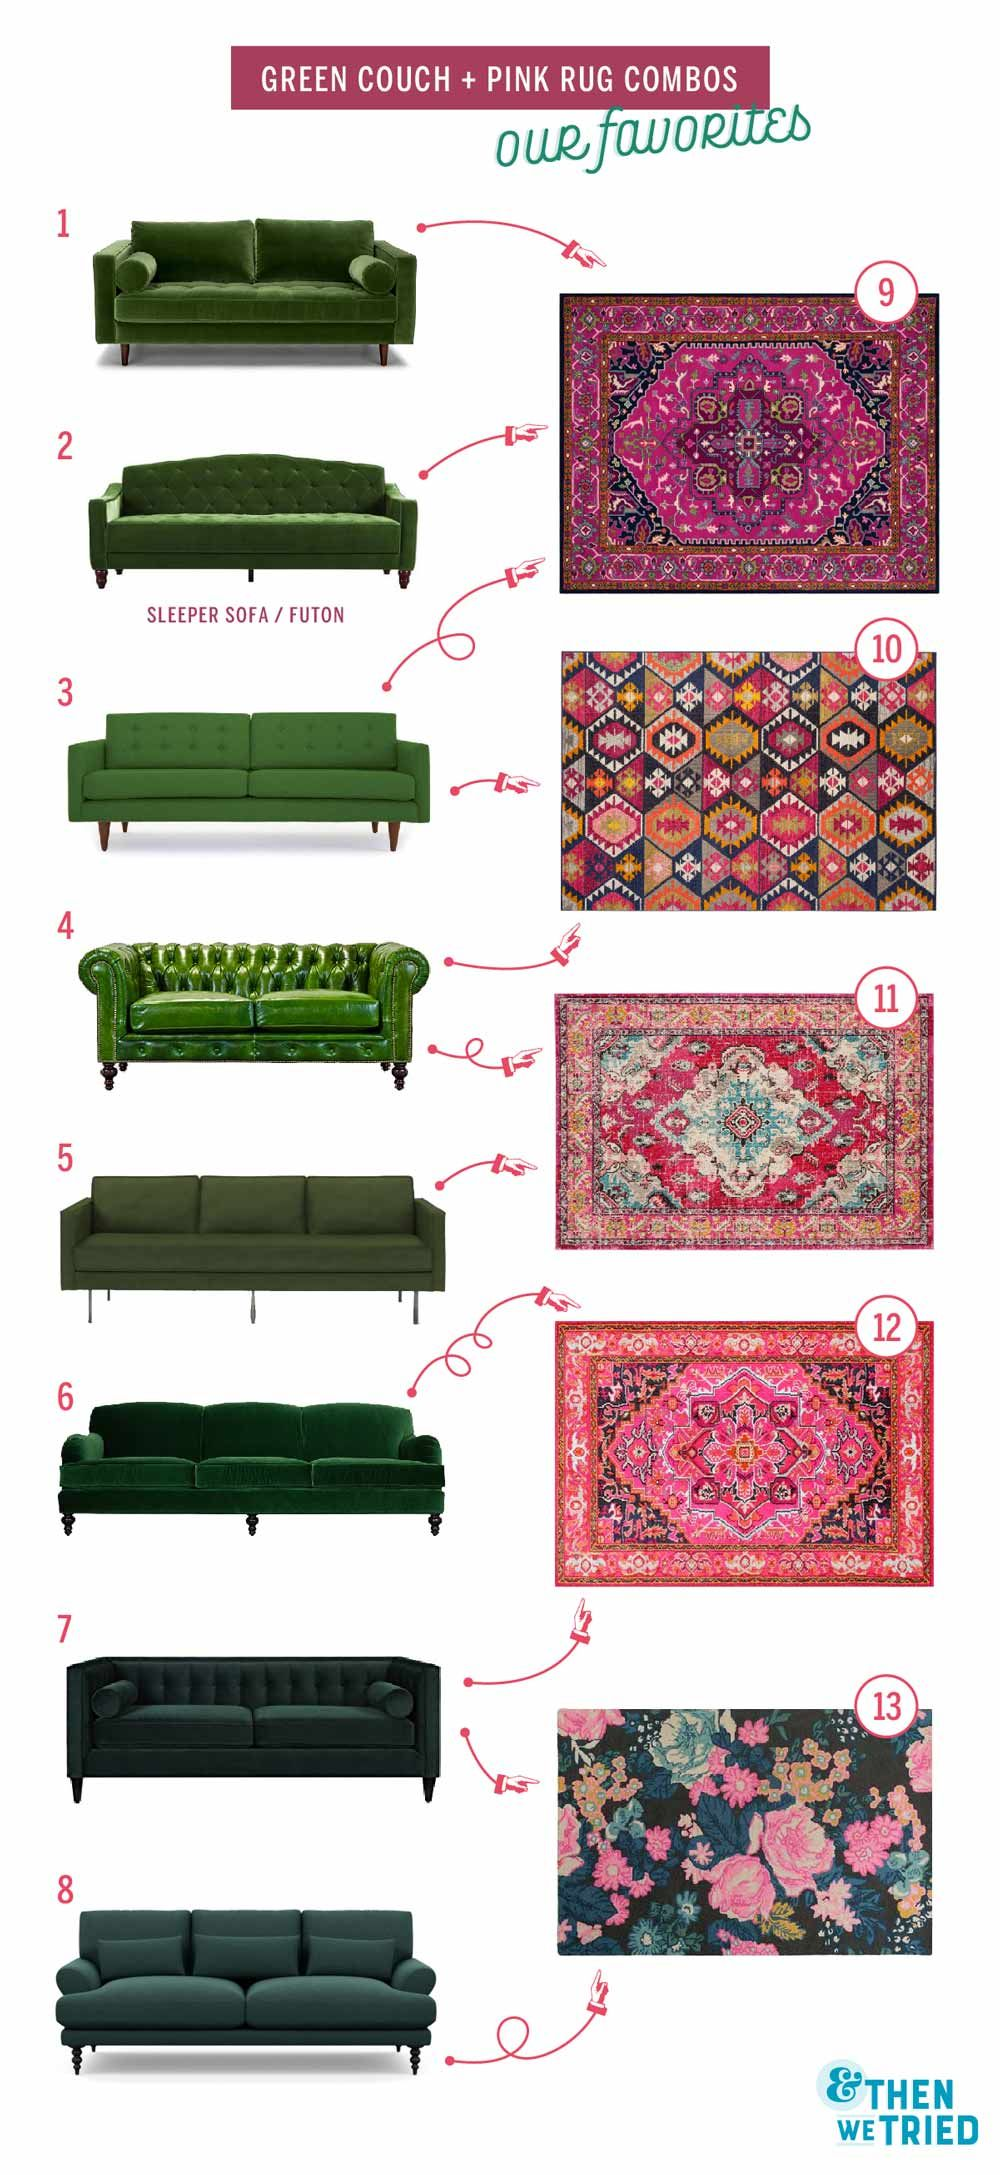 Colorful Living Room Refresh Green Couch And Pink Rug Future Home